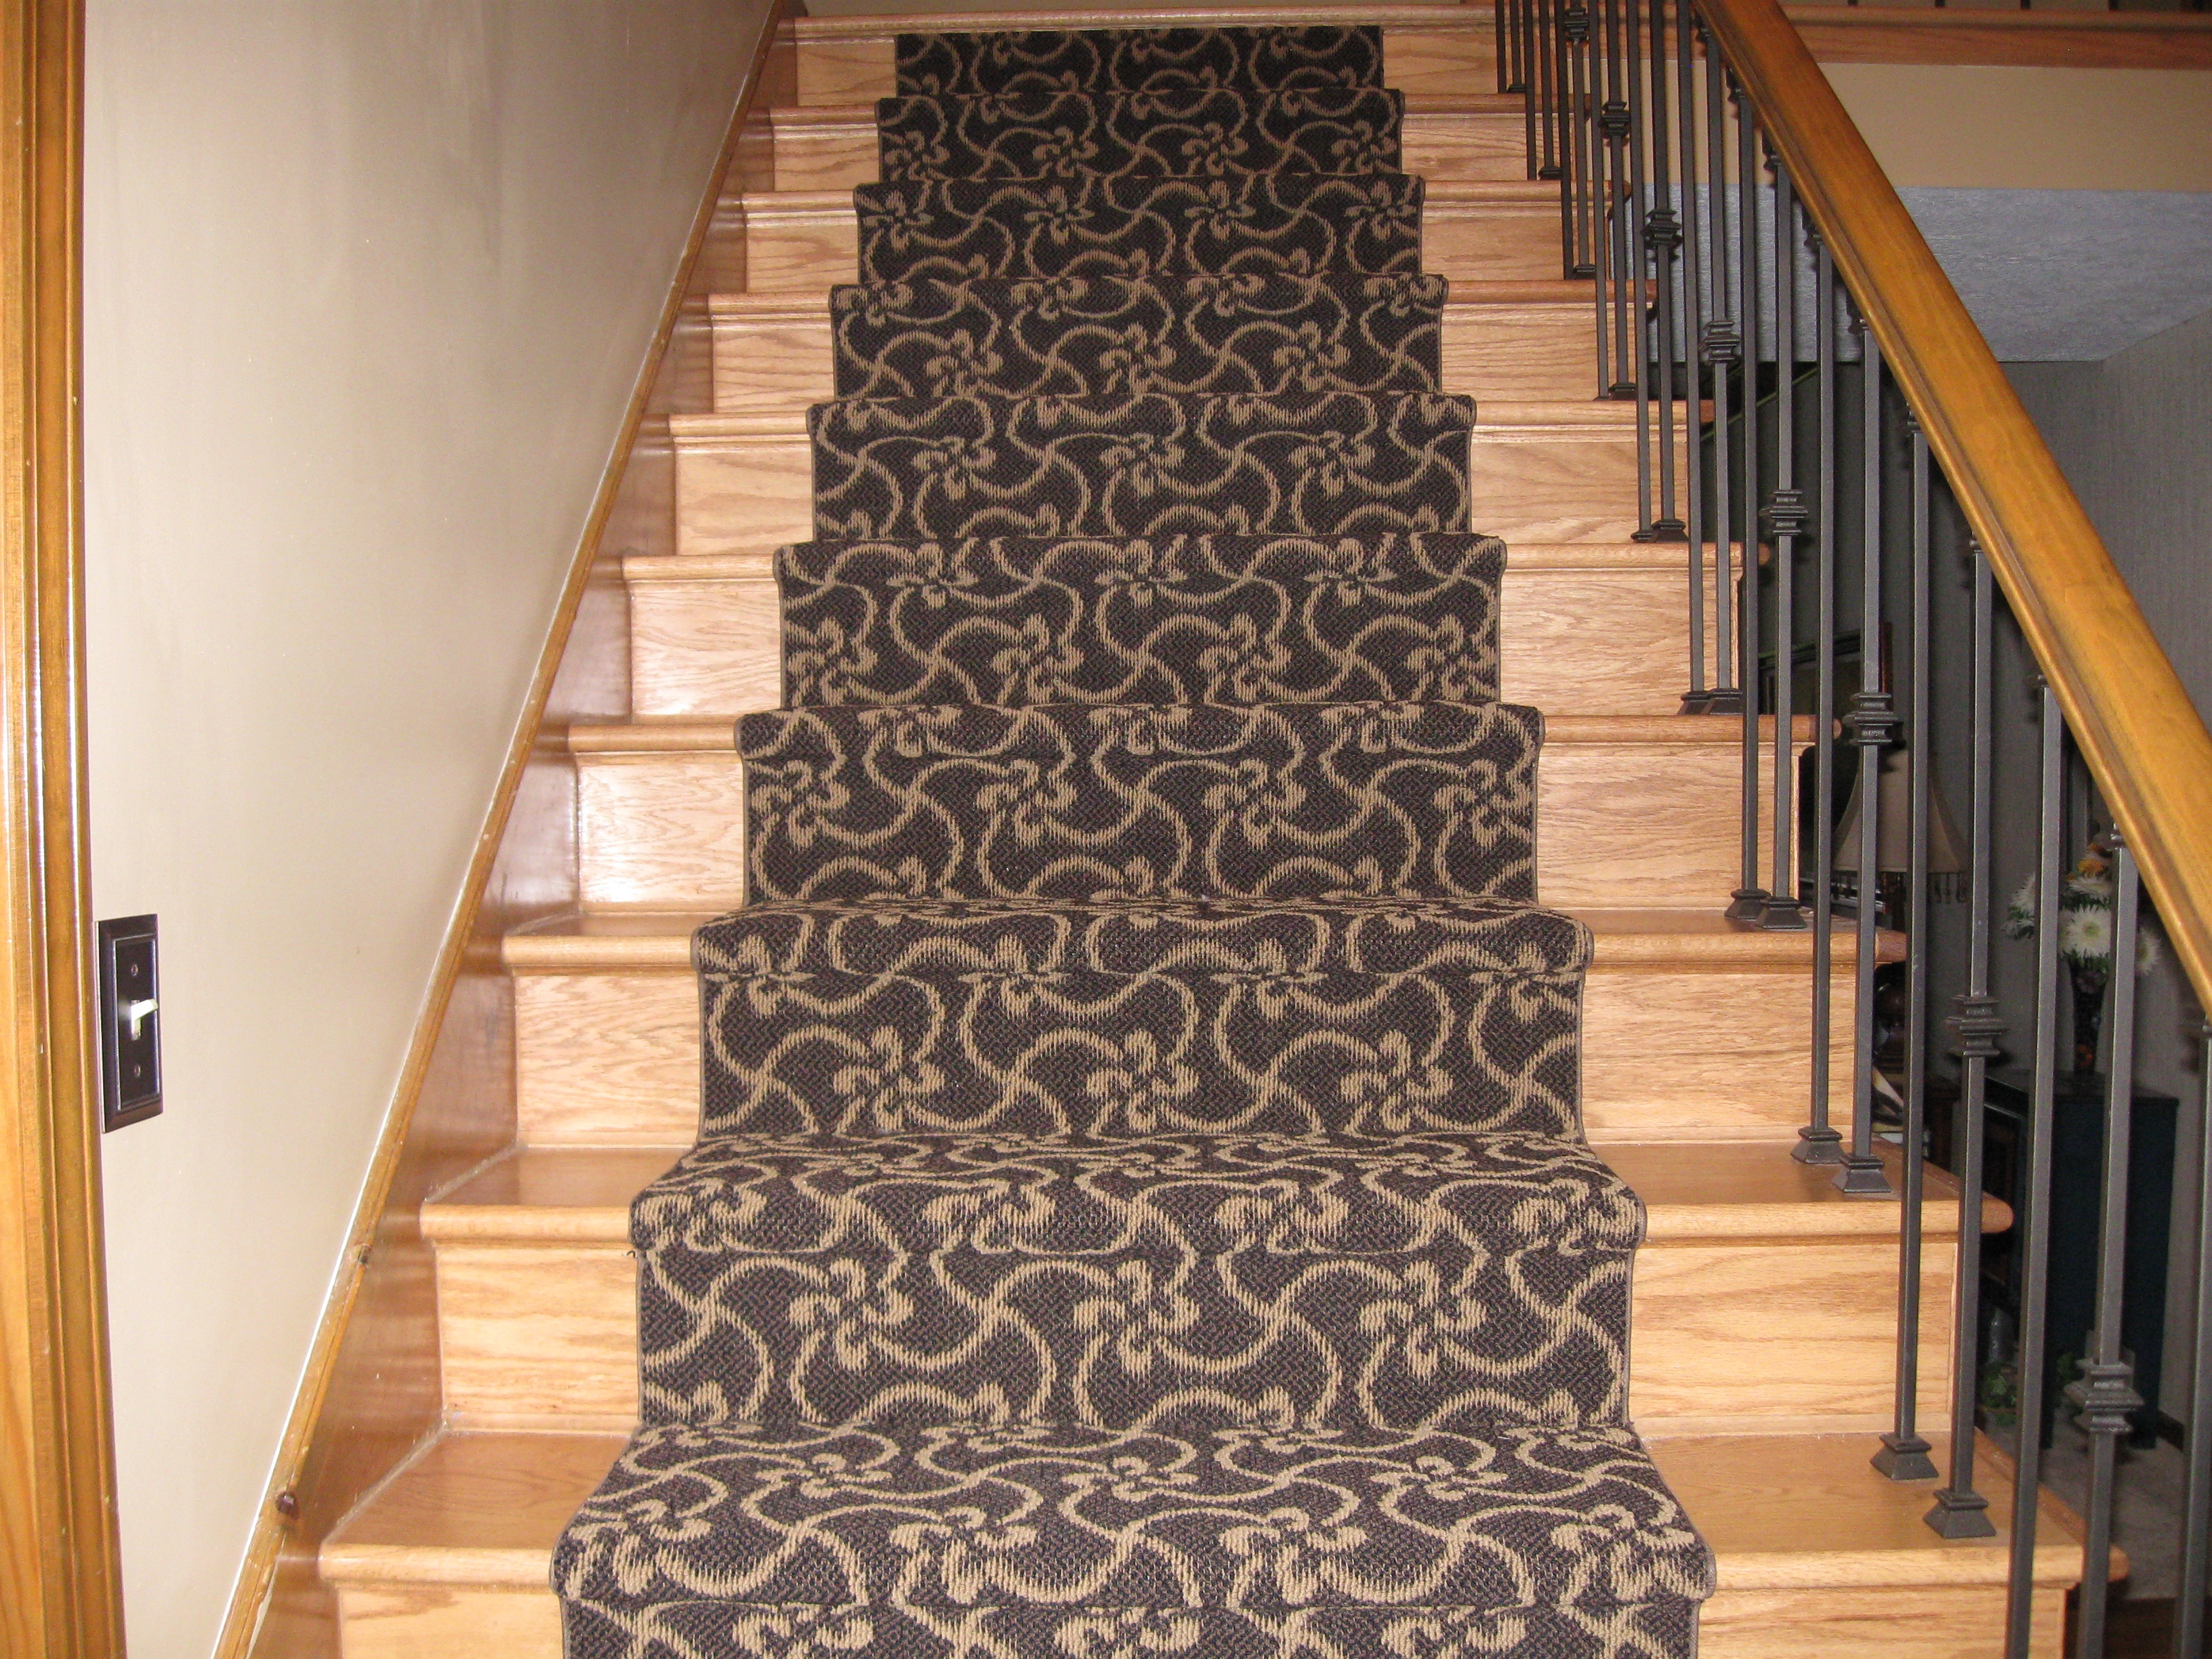 Real Estate Tips Installing Carpet Runner On Wood Stairs In Stair Tread Carpet Runners (Image 12 of 15)